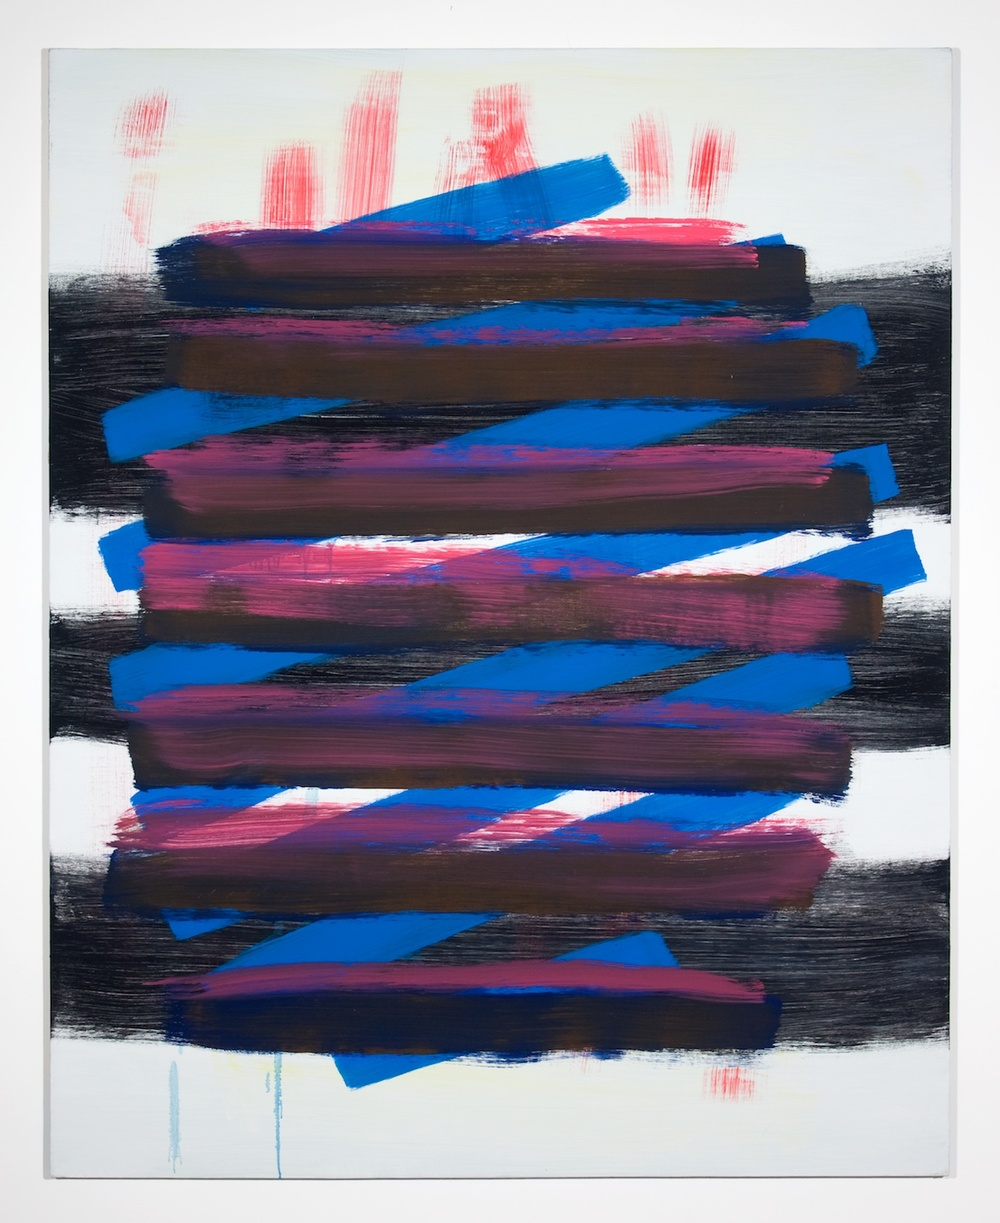 "Jon Pestoni Blue and Black Crossing 2010 Oil on canvas on panel 59 3/4"" x 47 1/2"" P036"